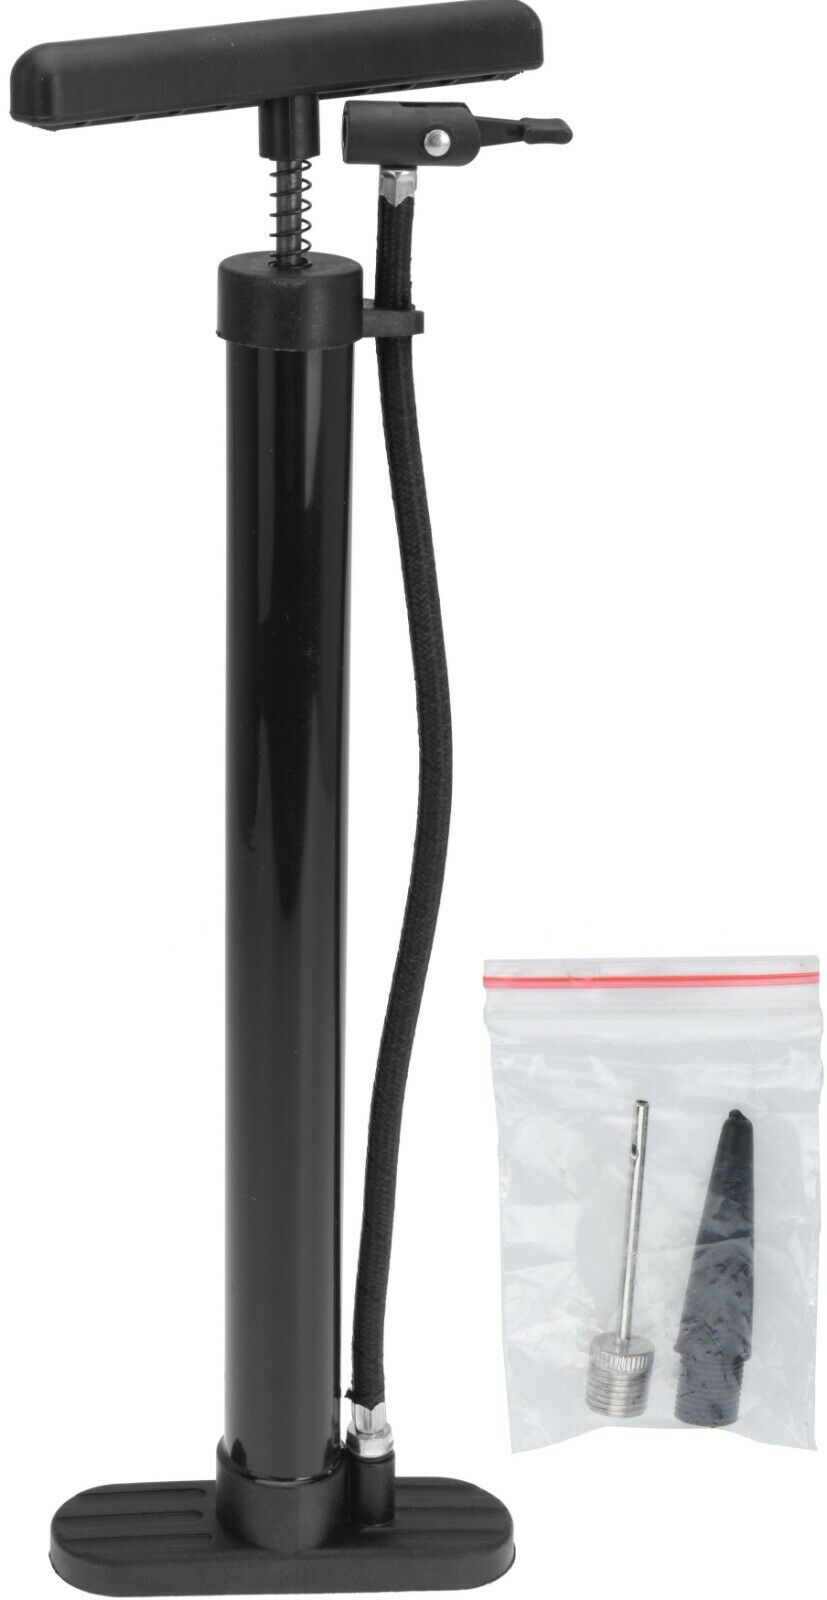 Bike Track Pump Bicycle Pump For Balls Airbeds Pump With Attachments